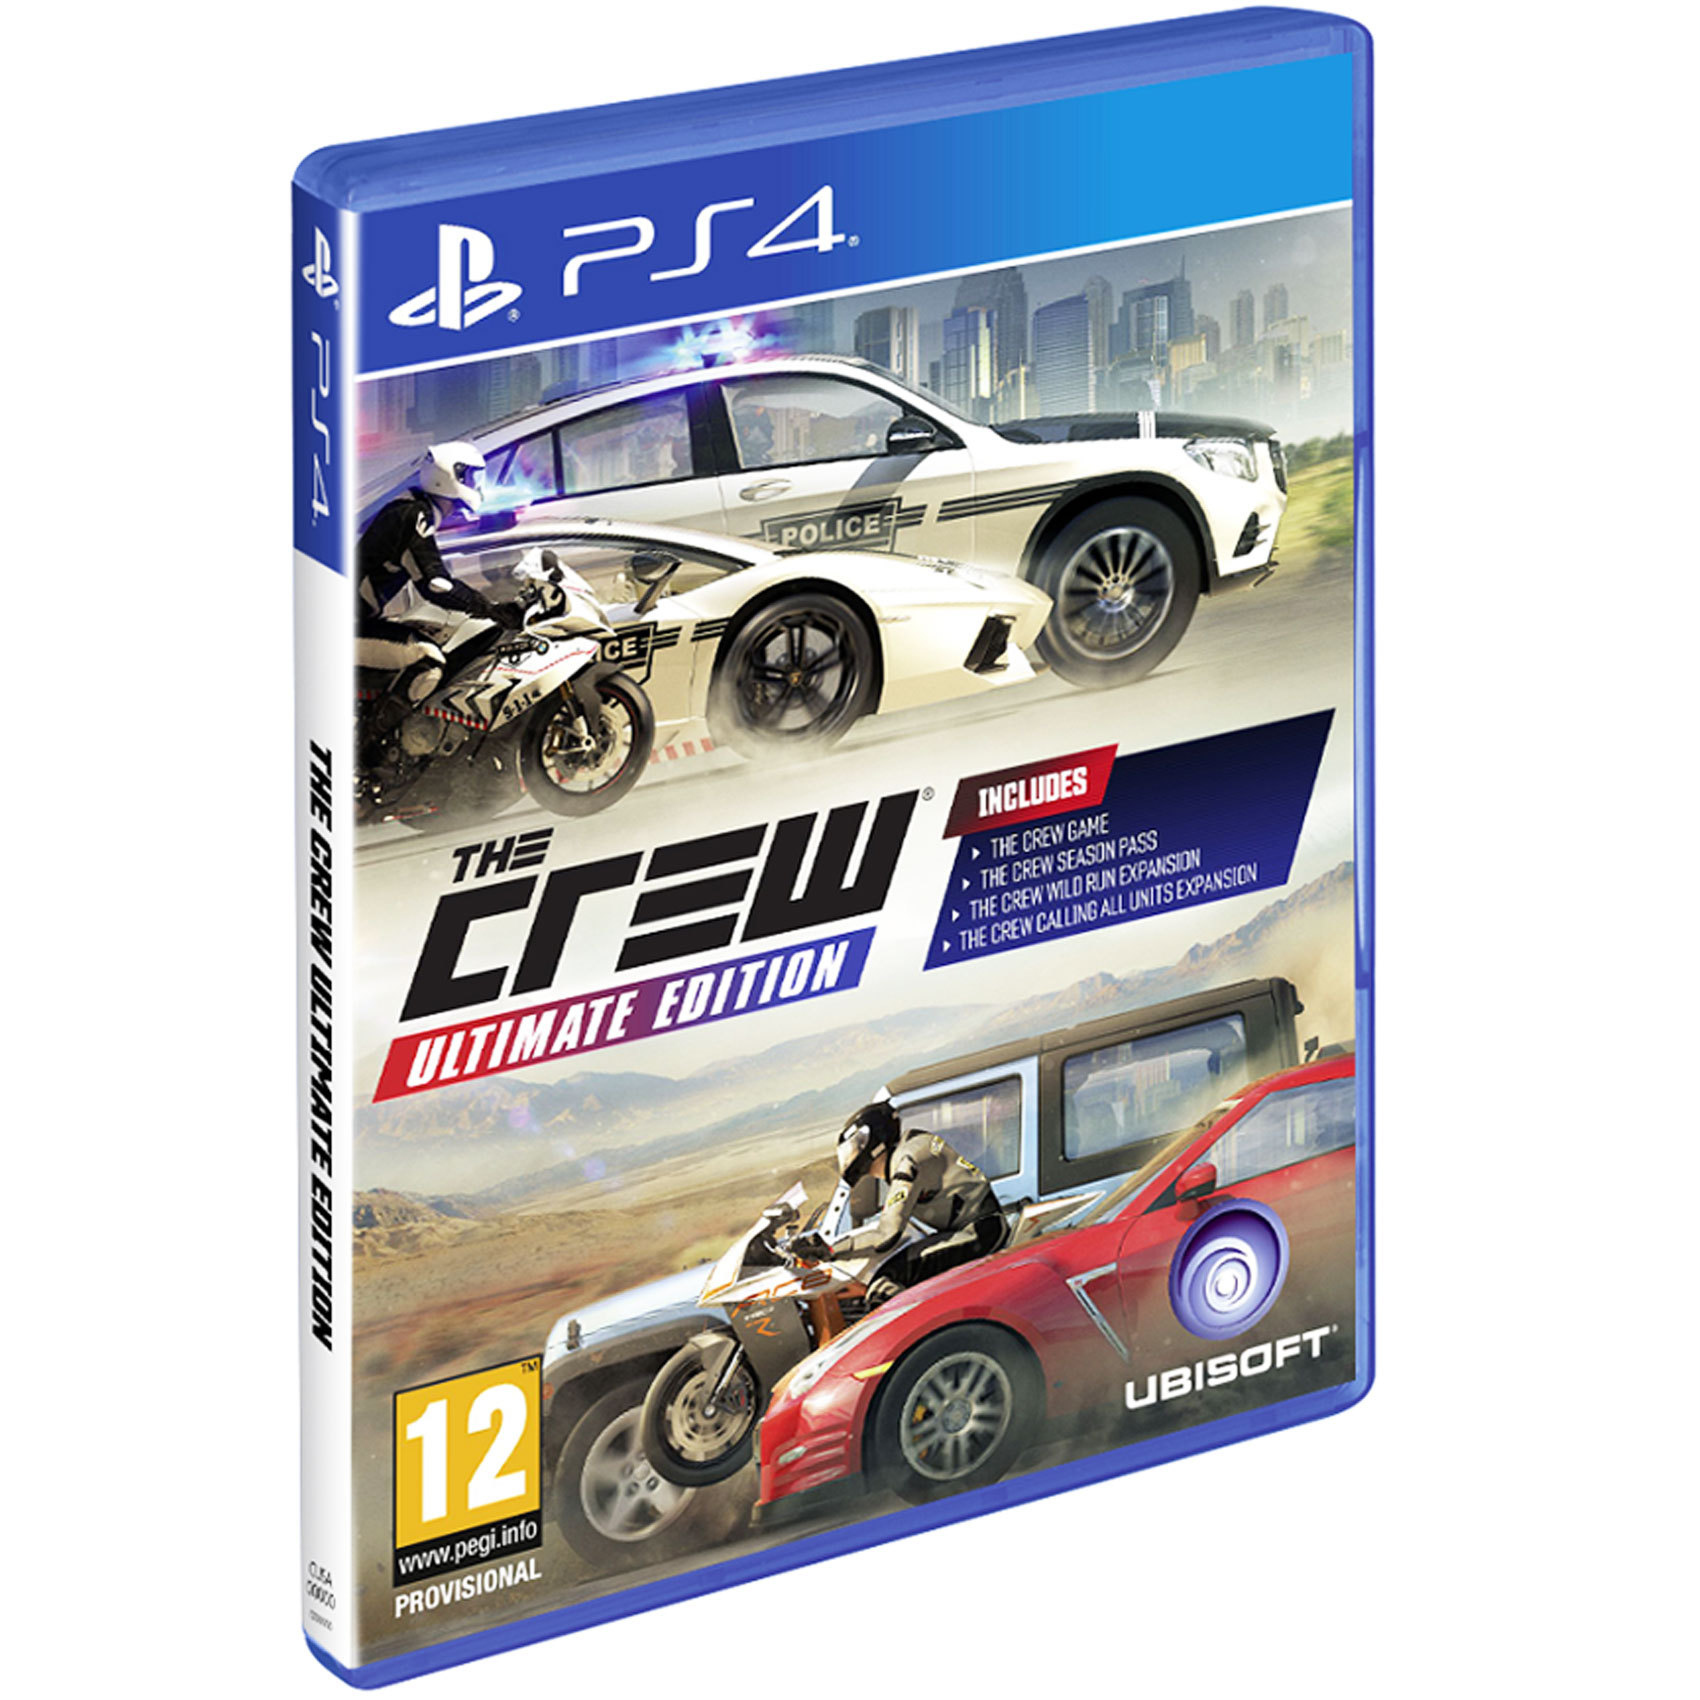 SONY PS4 THE CREW ULTIMATE EDITION